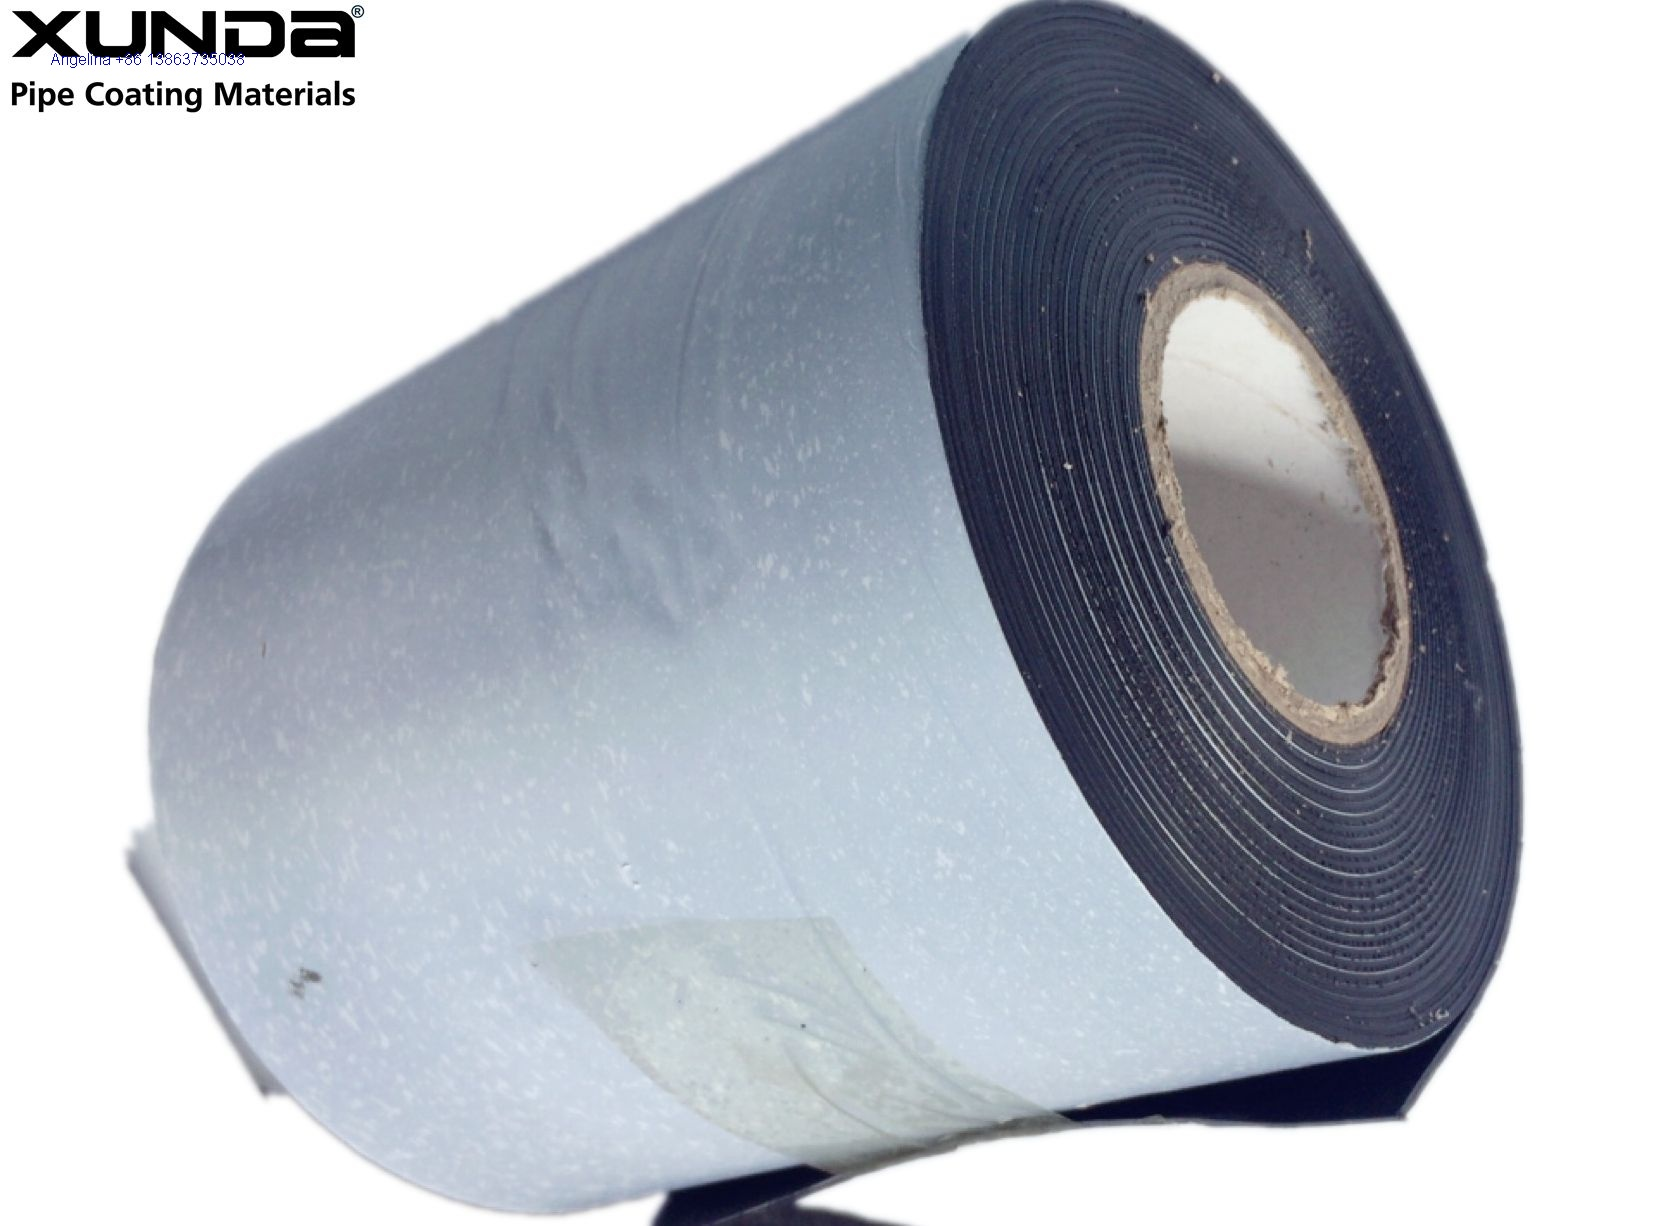 cold applied laminated tape for repair pipes